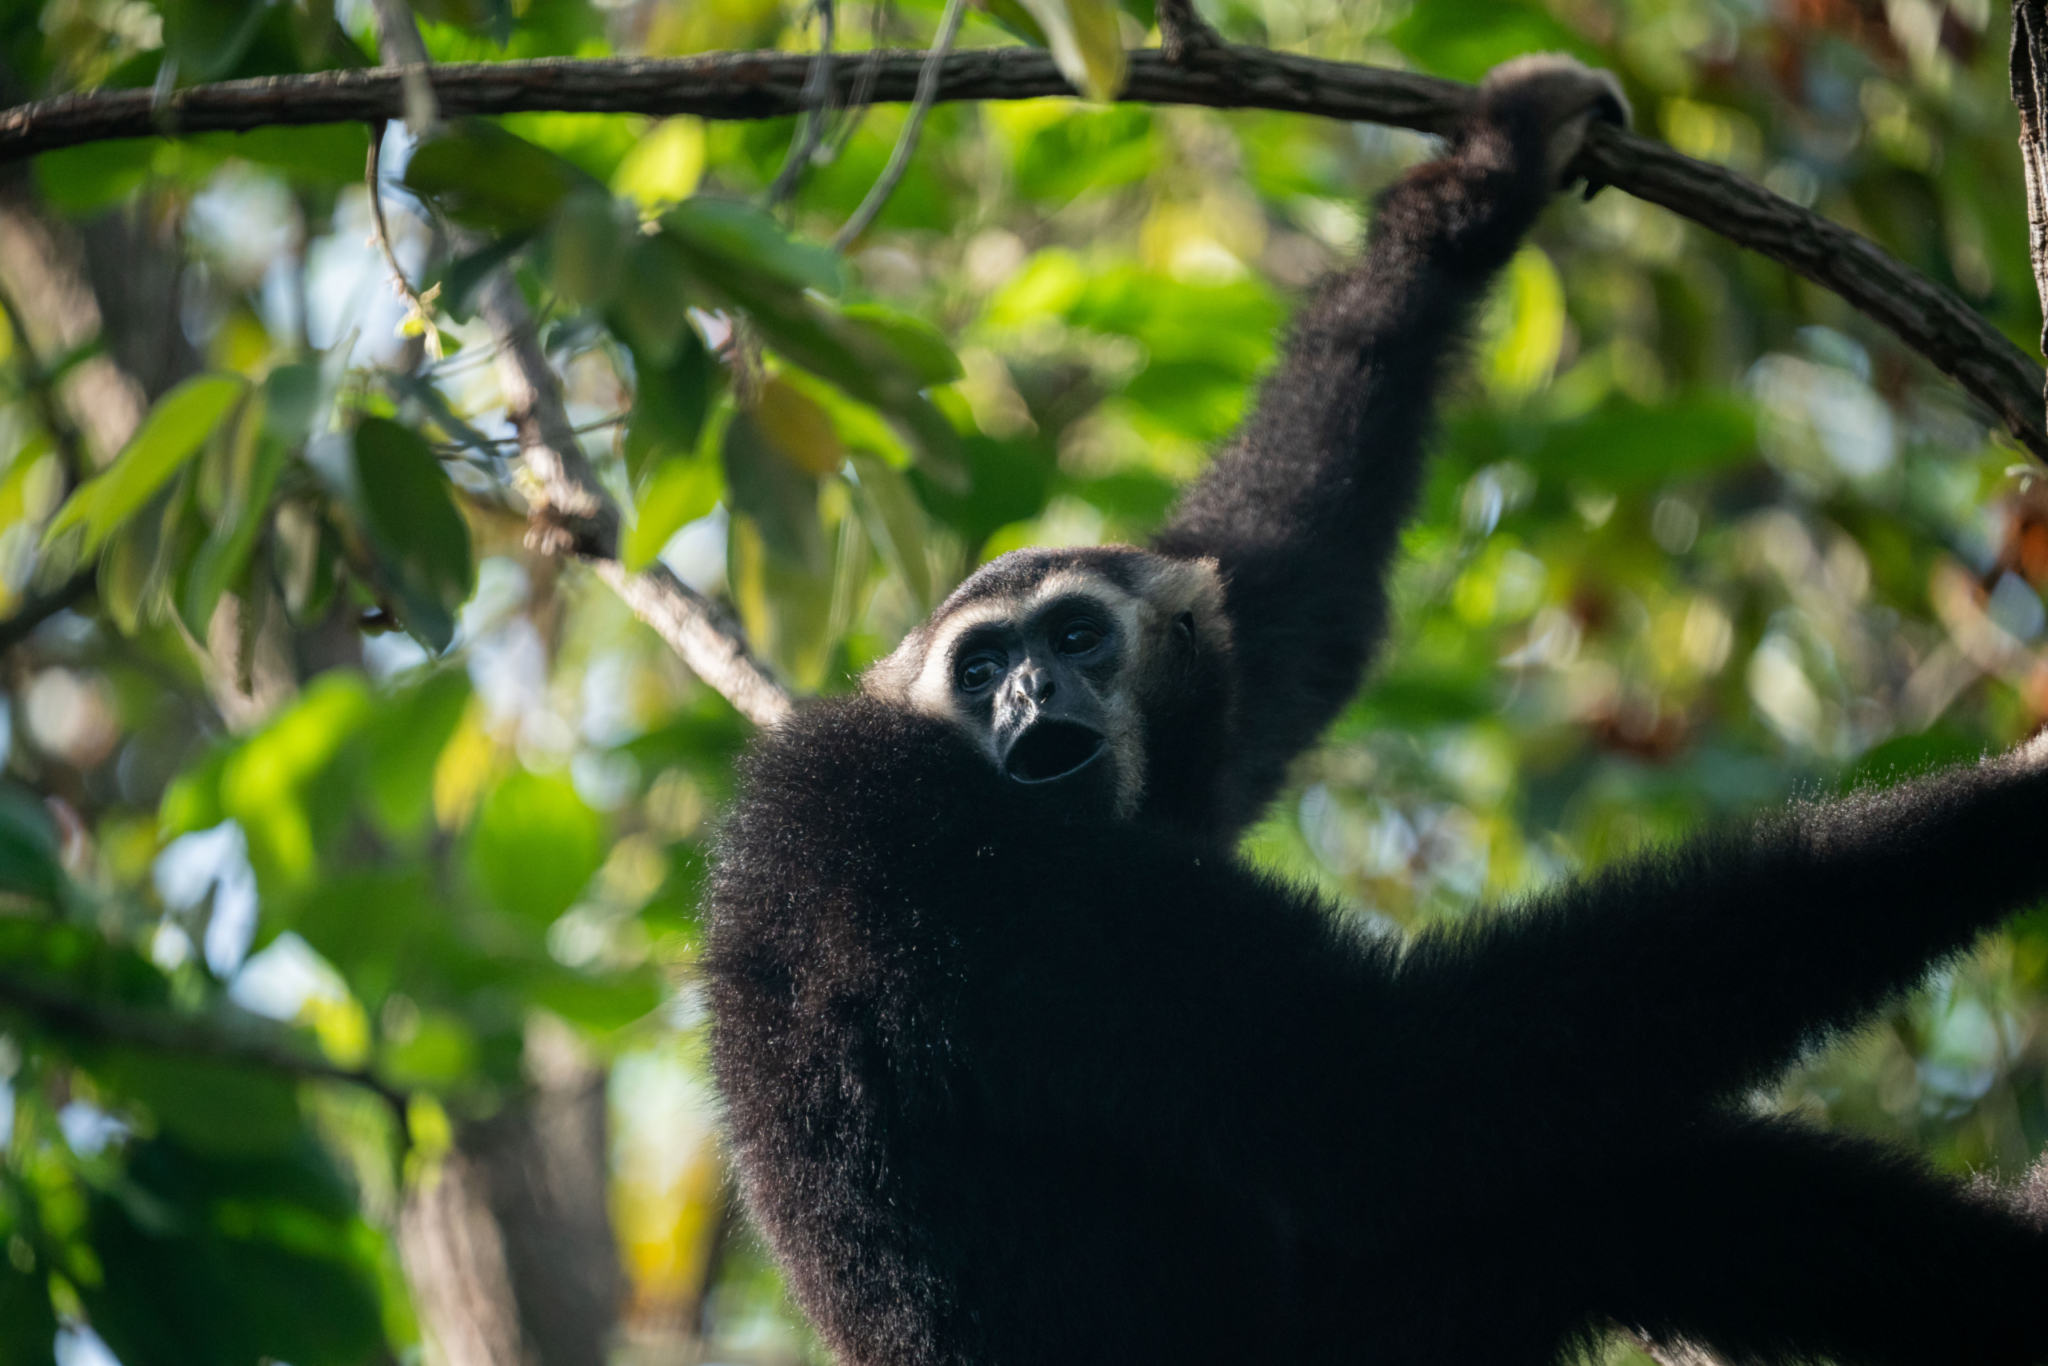 Gibbons released into Angkor wat